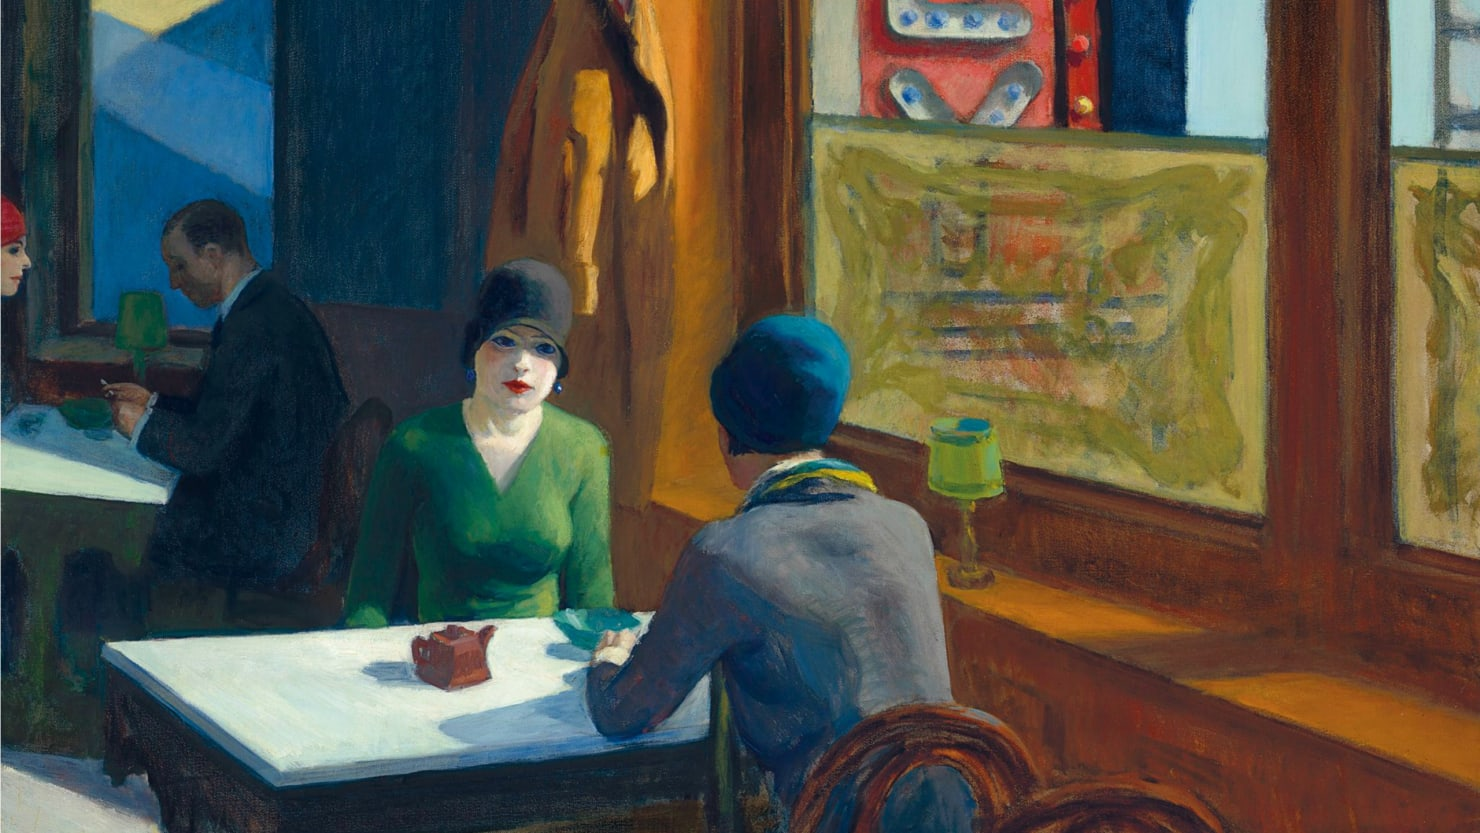 Edward Hopper Painting Sells for $91.9 Million, Setting New Record for American Art